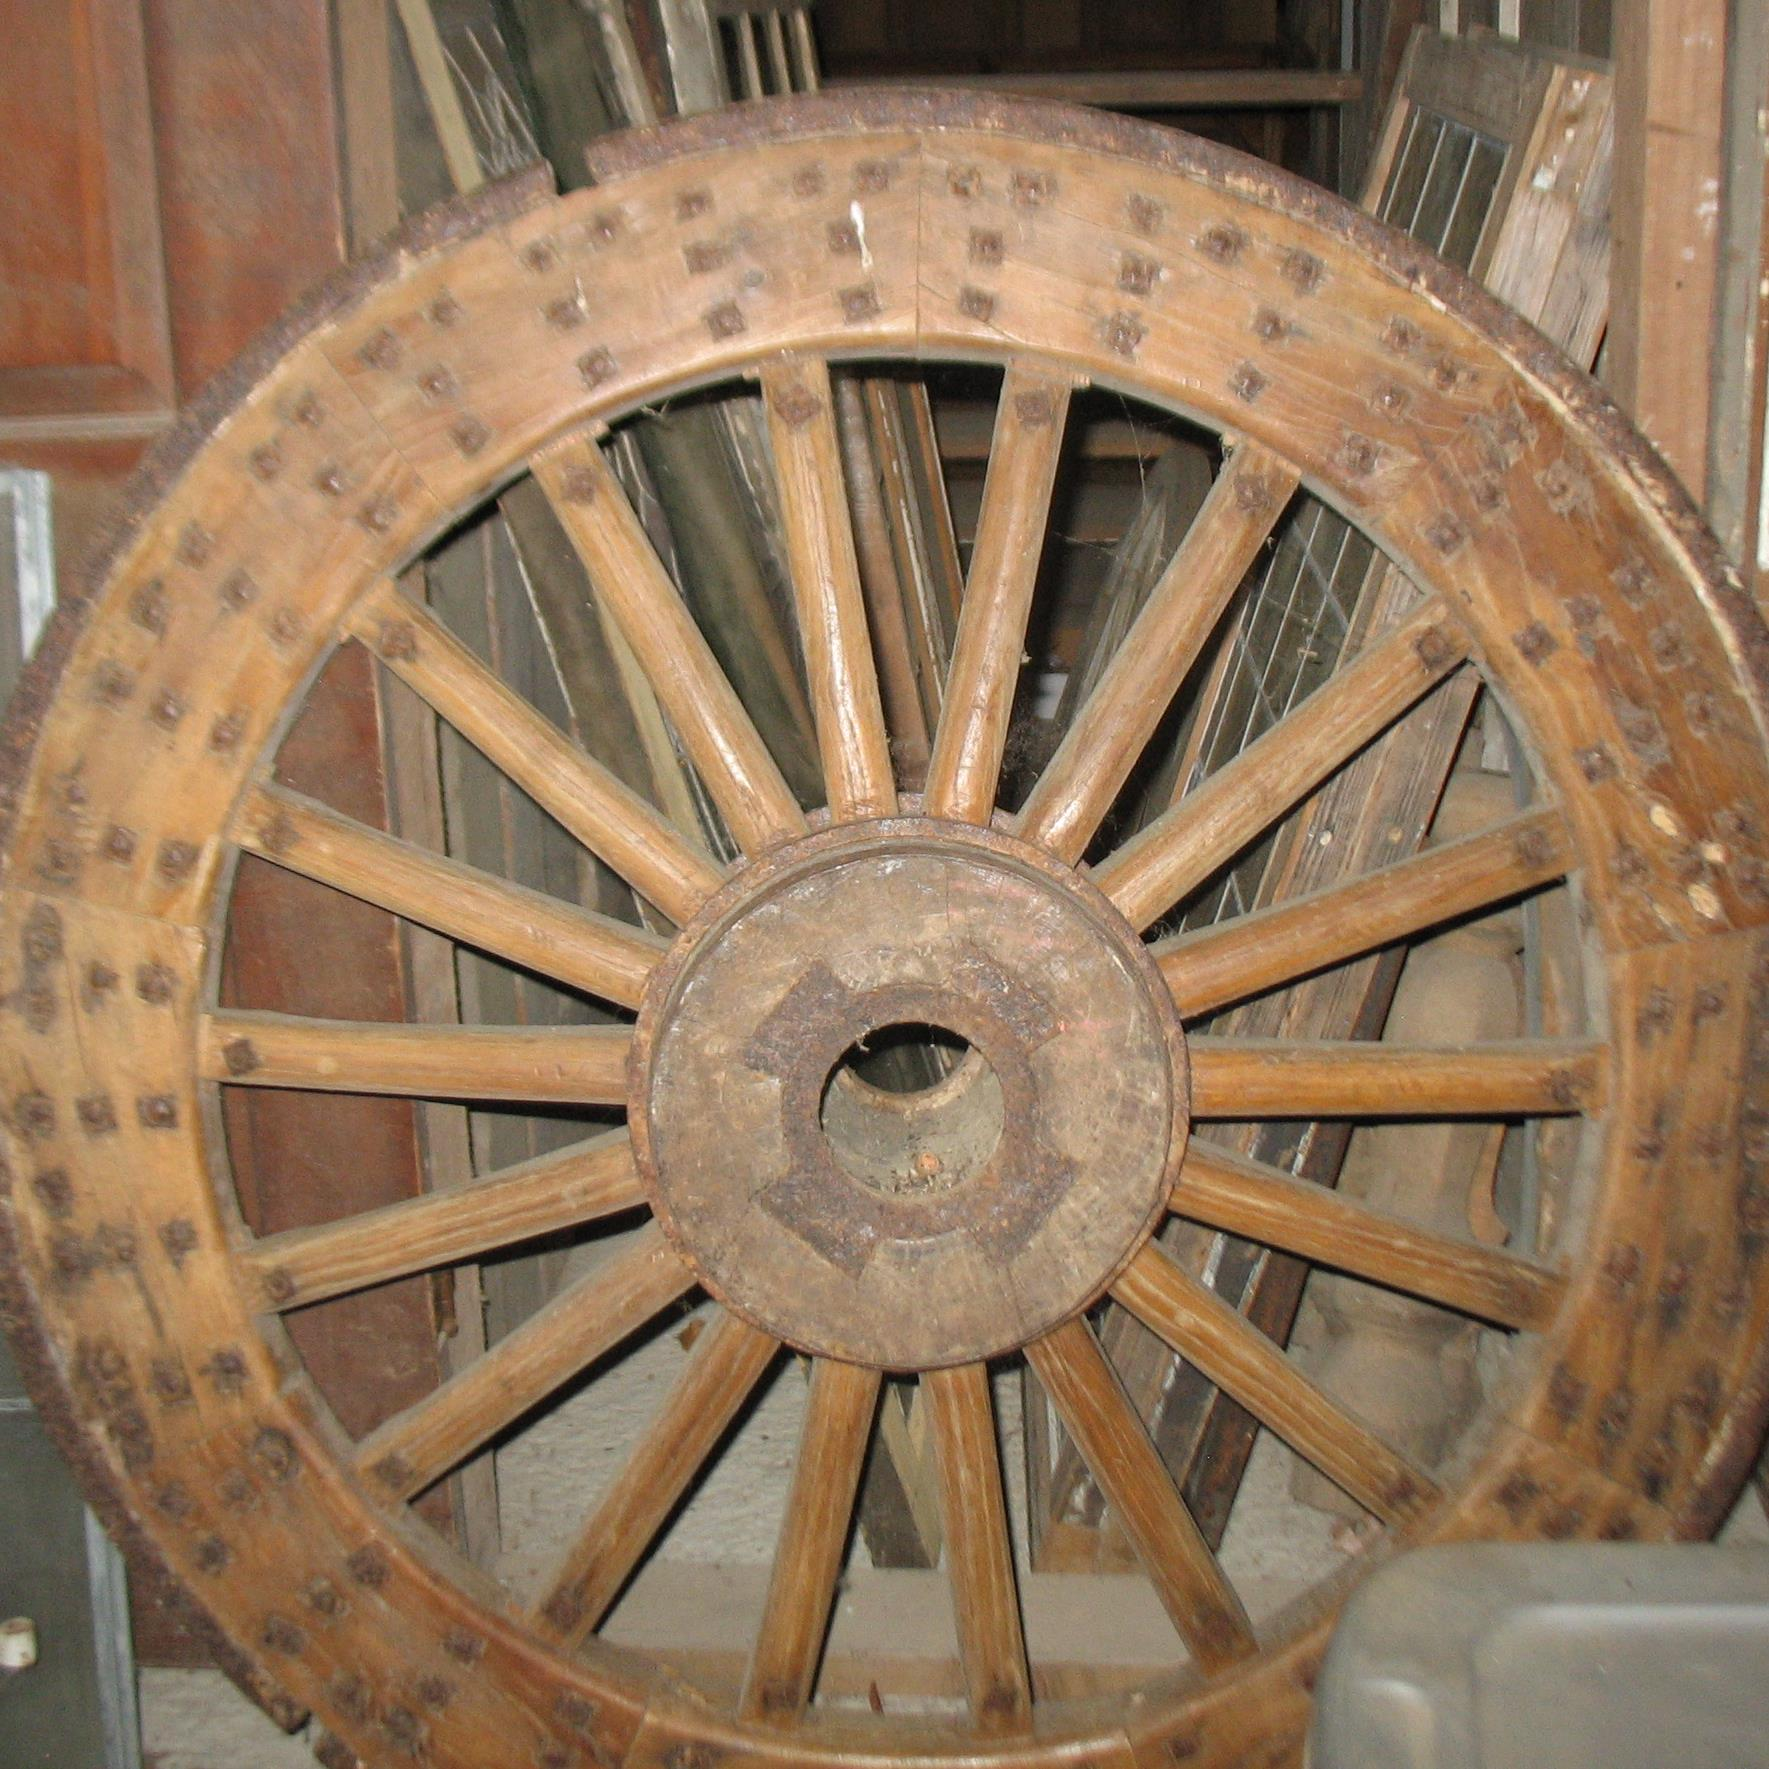 Large Chinese Wheel. All wood with cast iron rail around wheel and iron nails.  Would make wonderful table or wall hanging. Measures 6 feet across.    Price: SOLD!!